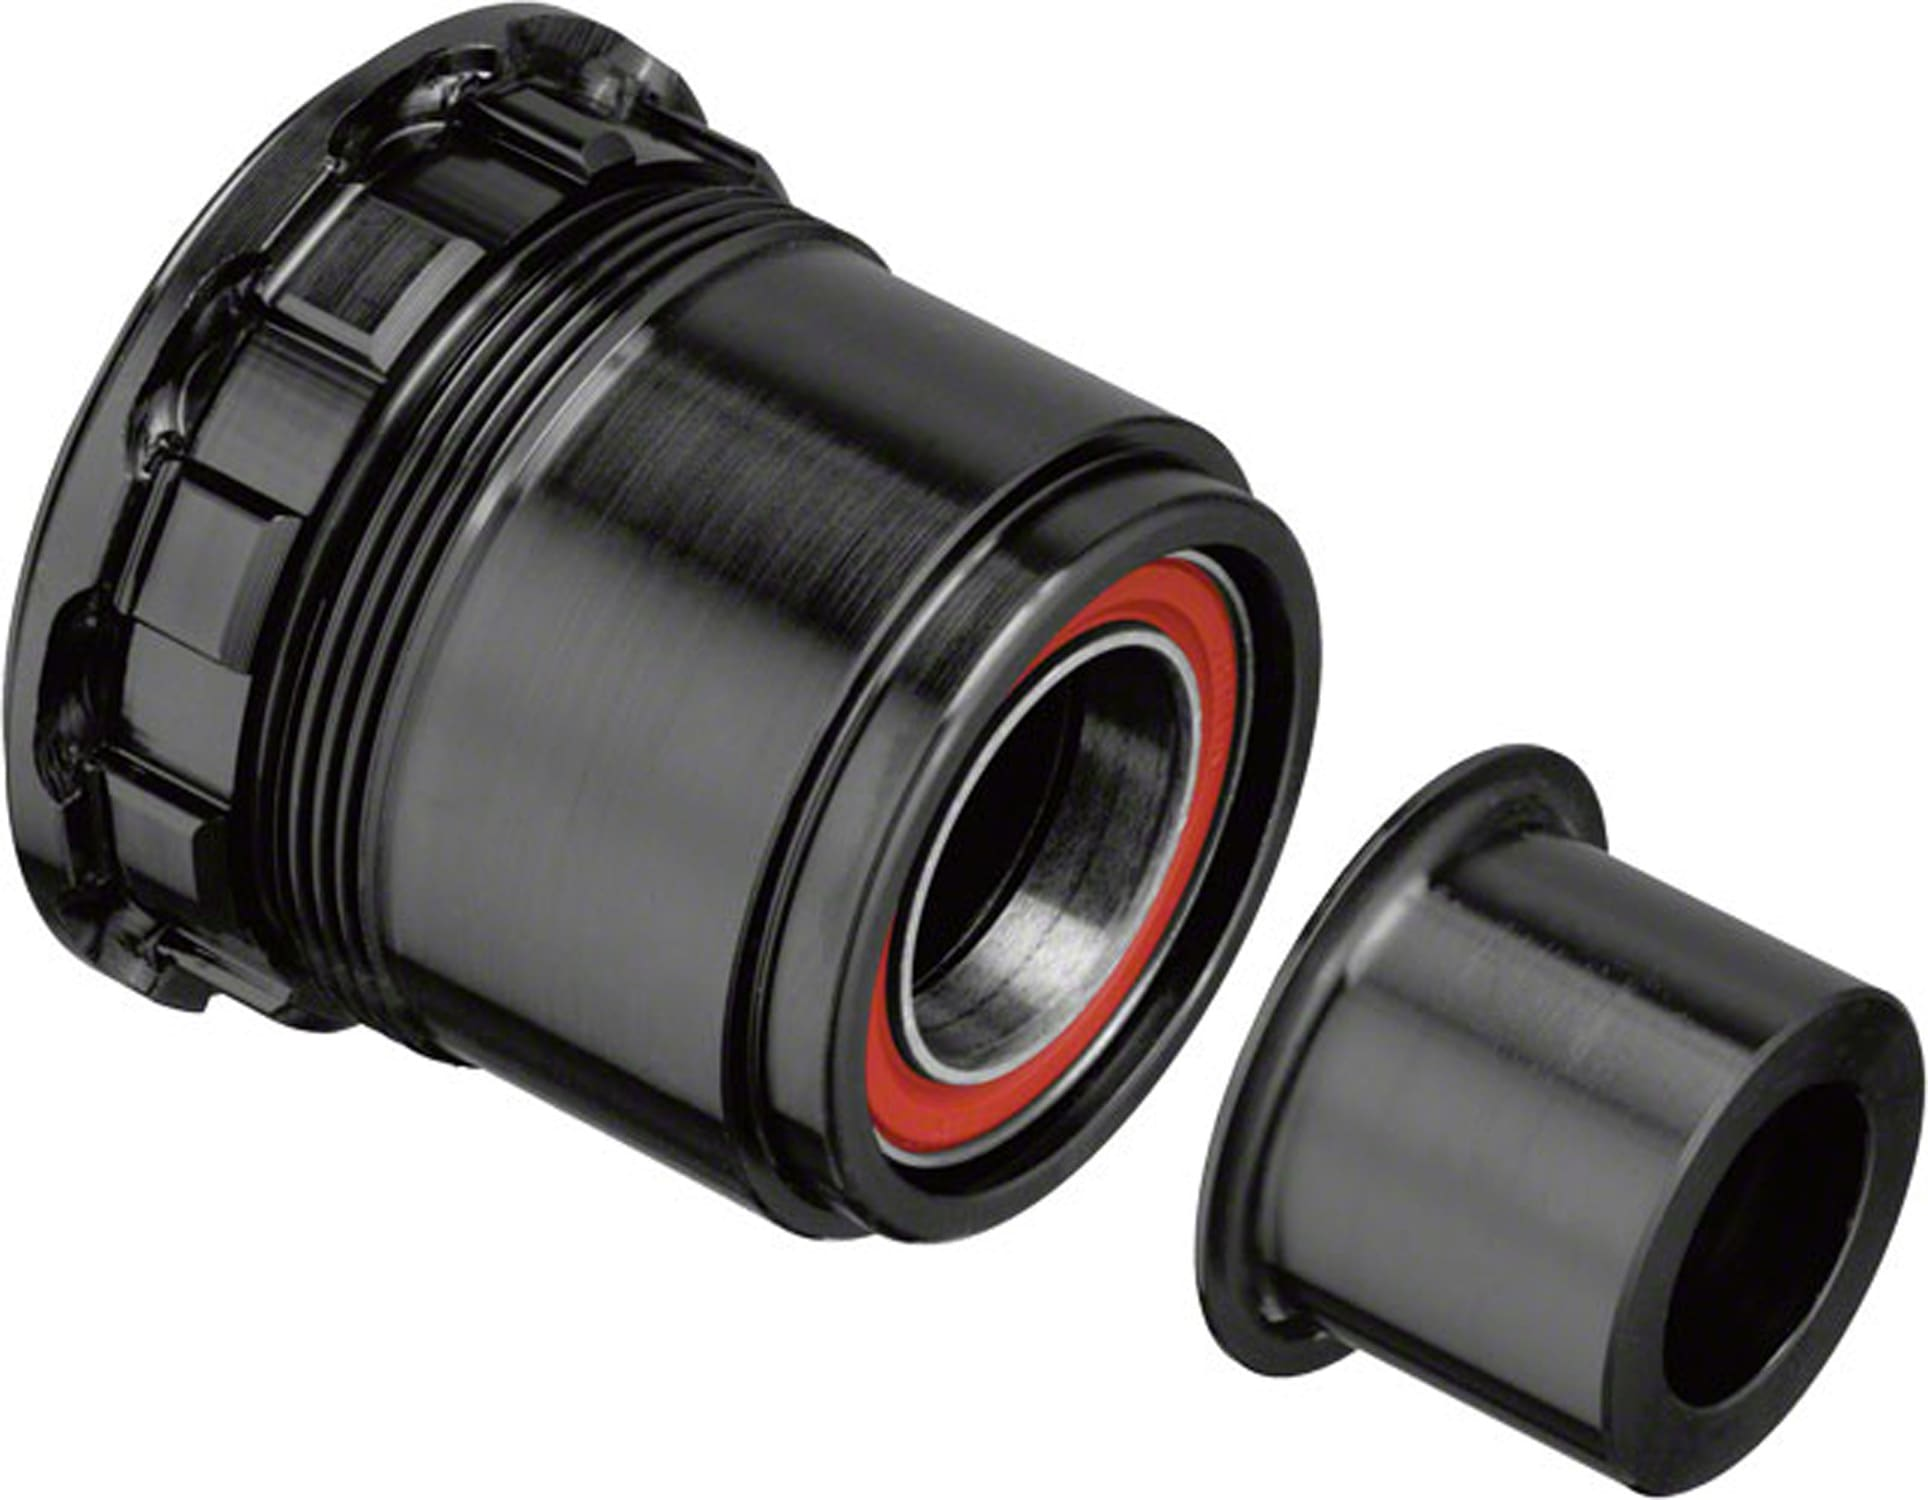 Image of DT Swiss XD Freehub Body And End Cap Bike Hub